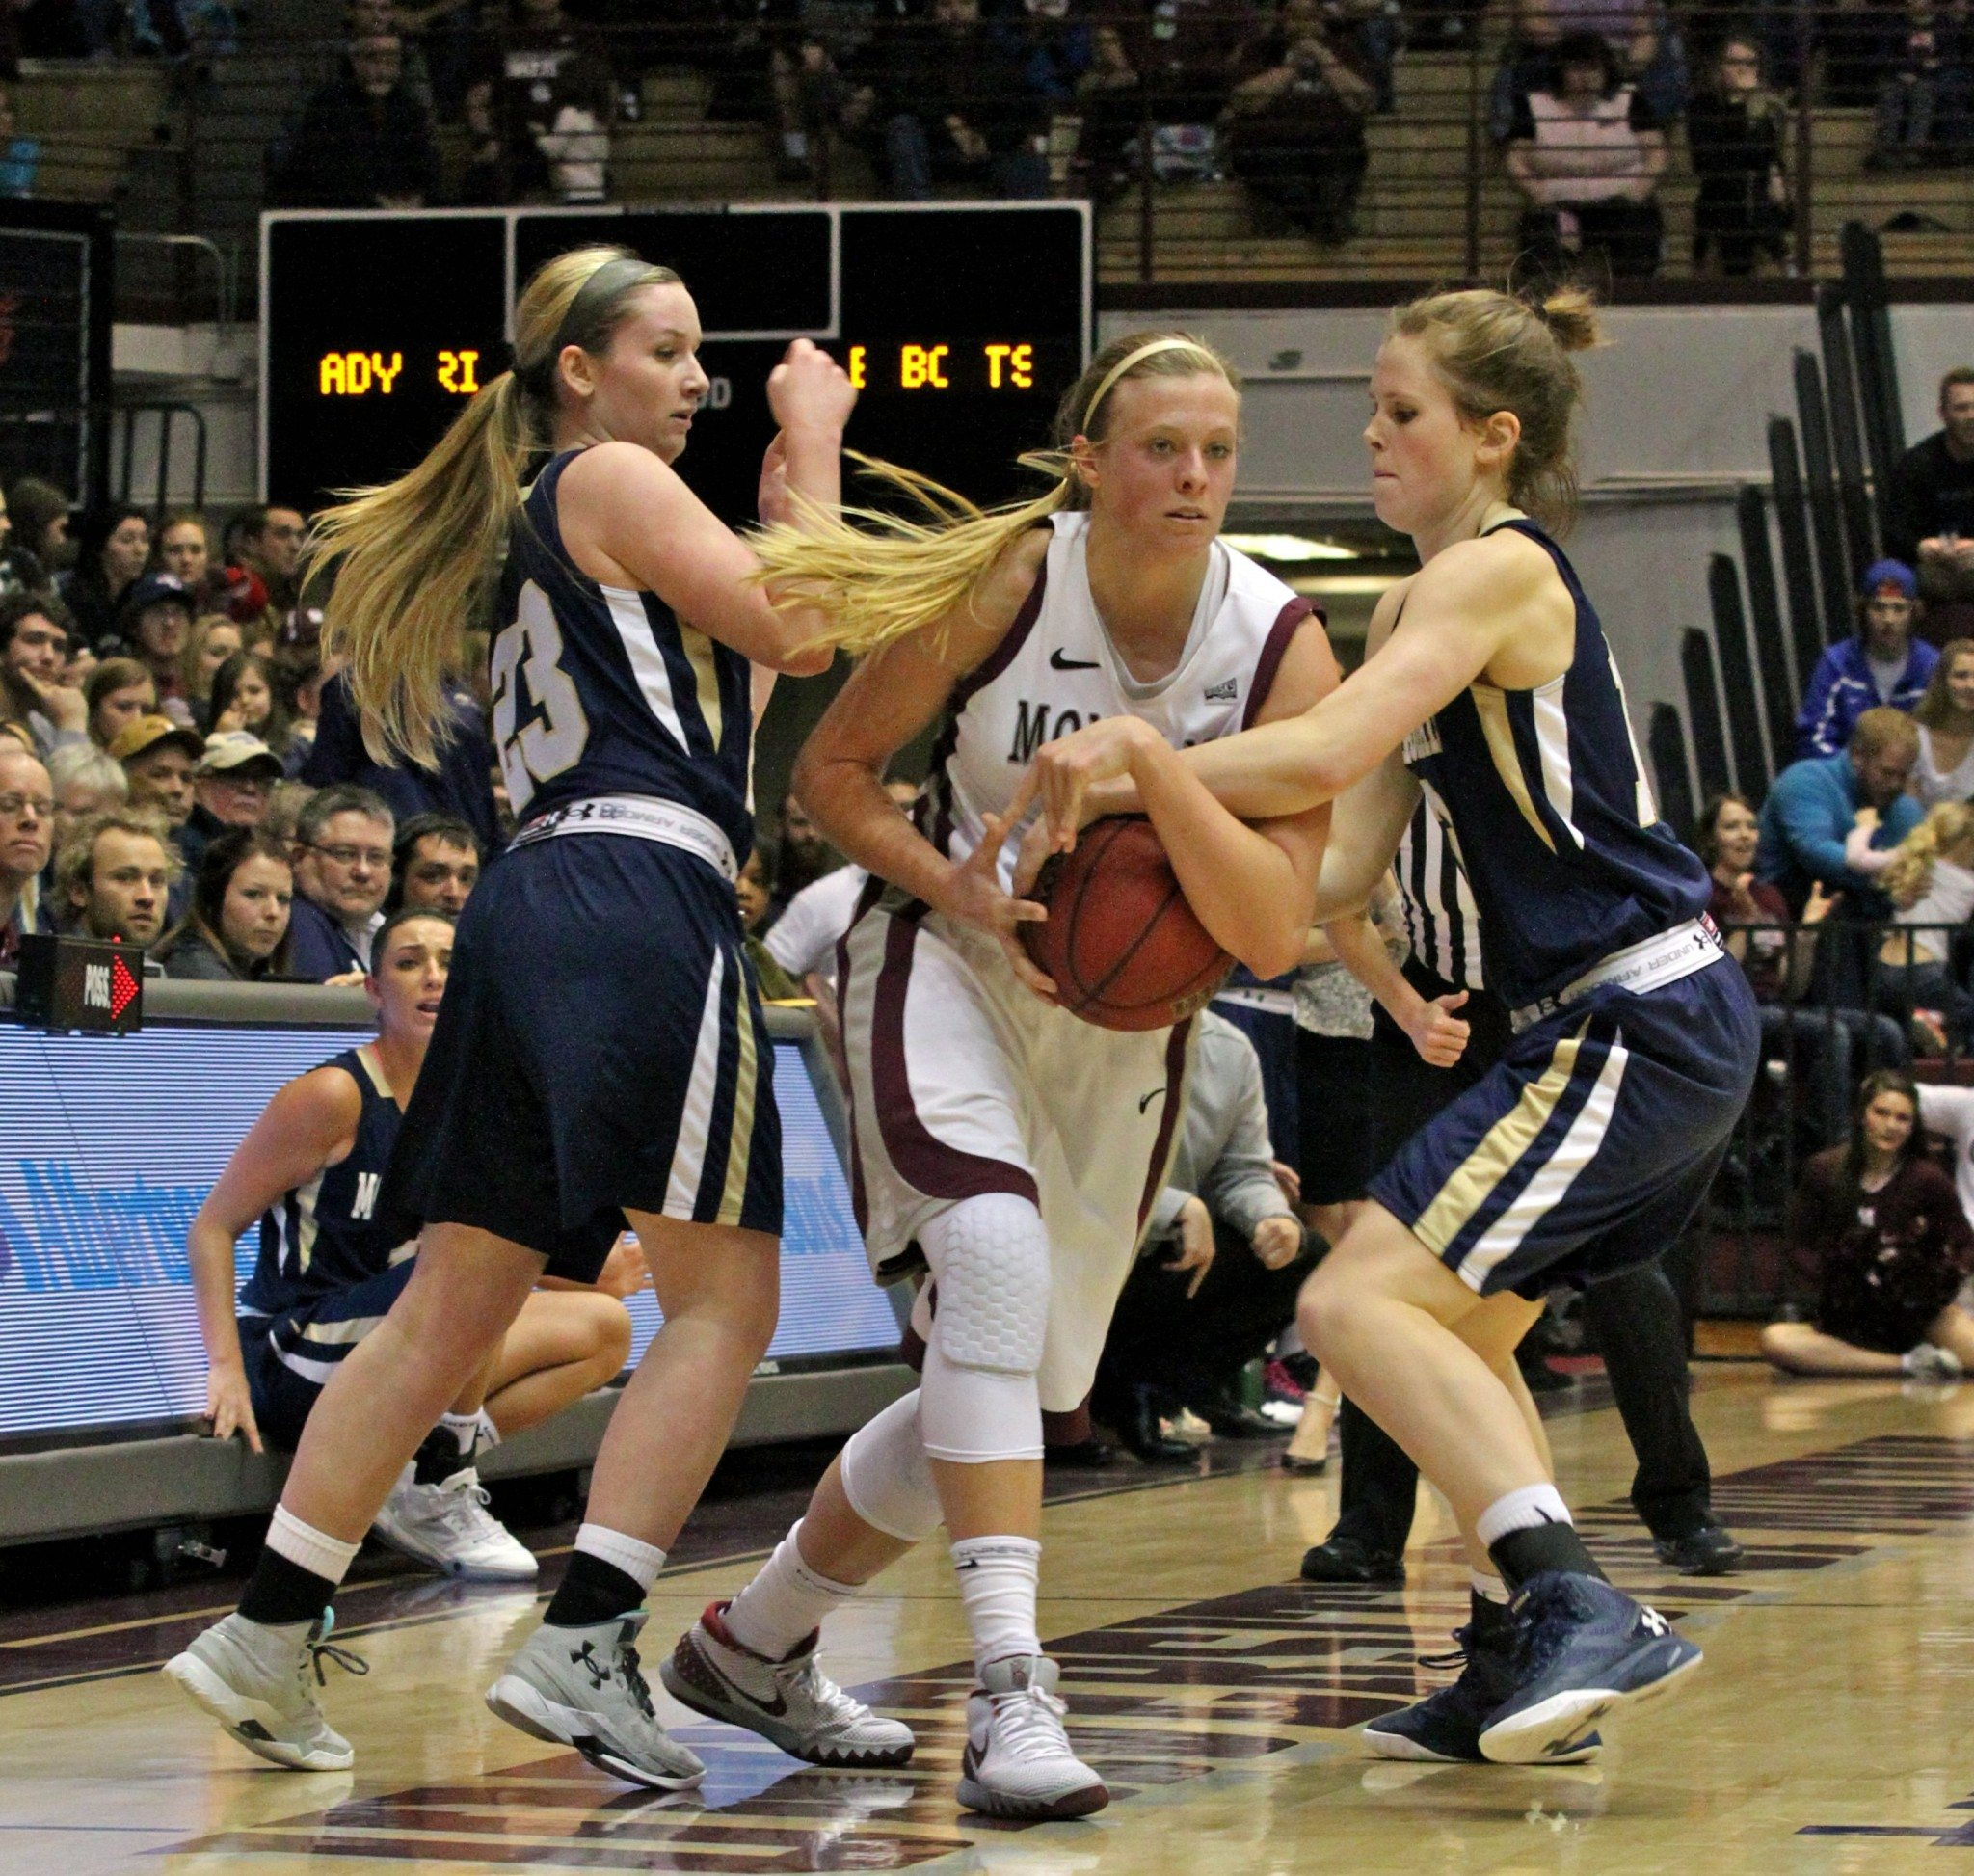 REPORT Valley Will Not Take 6th Year Nicholson Klick Leave Lady Griz